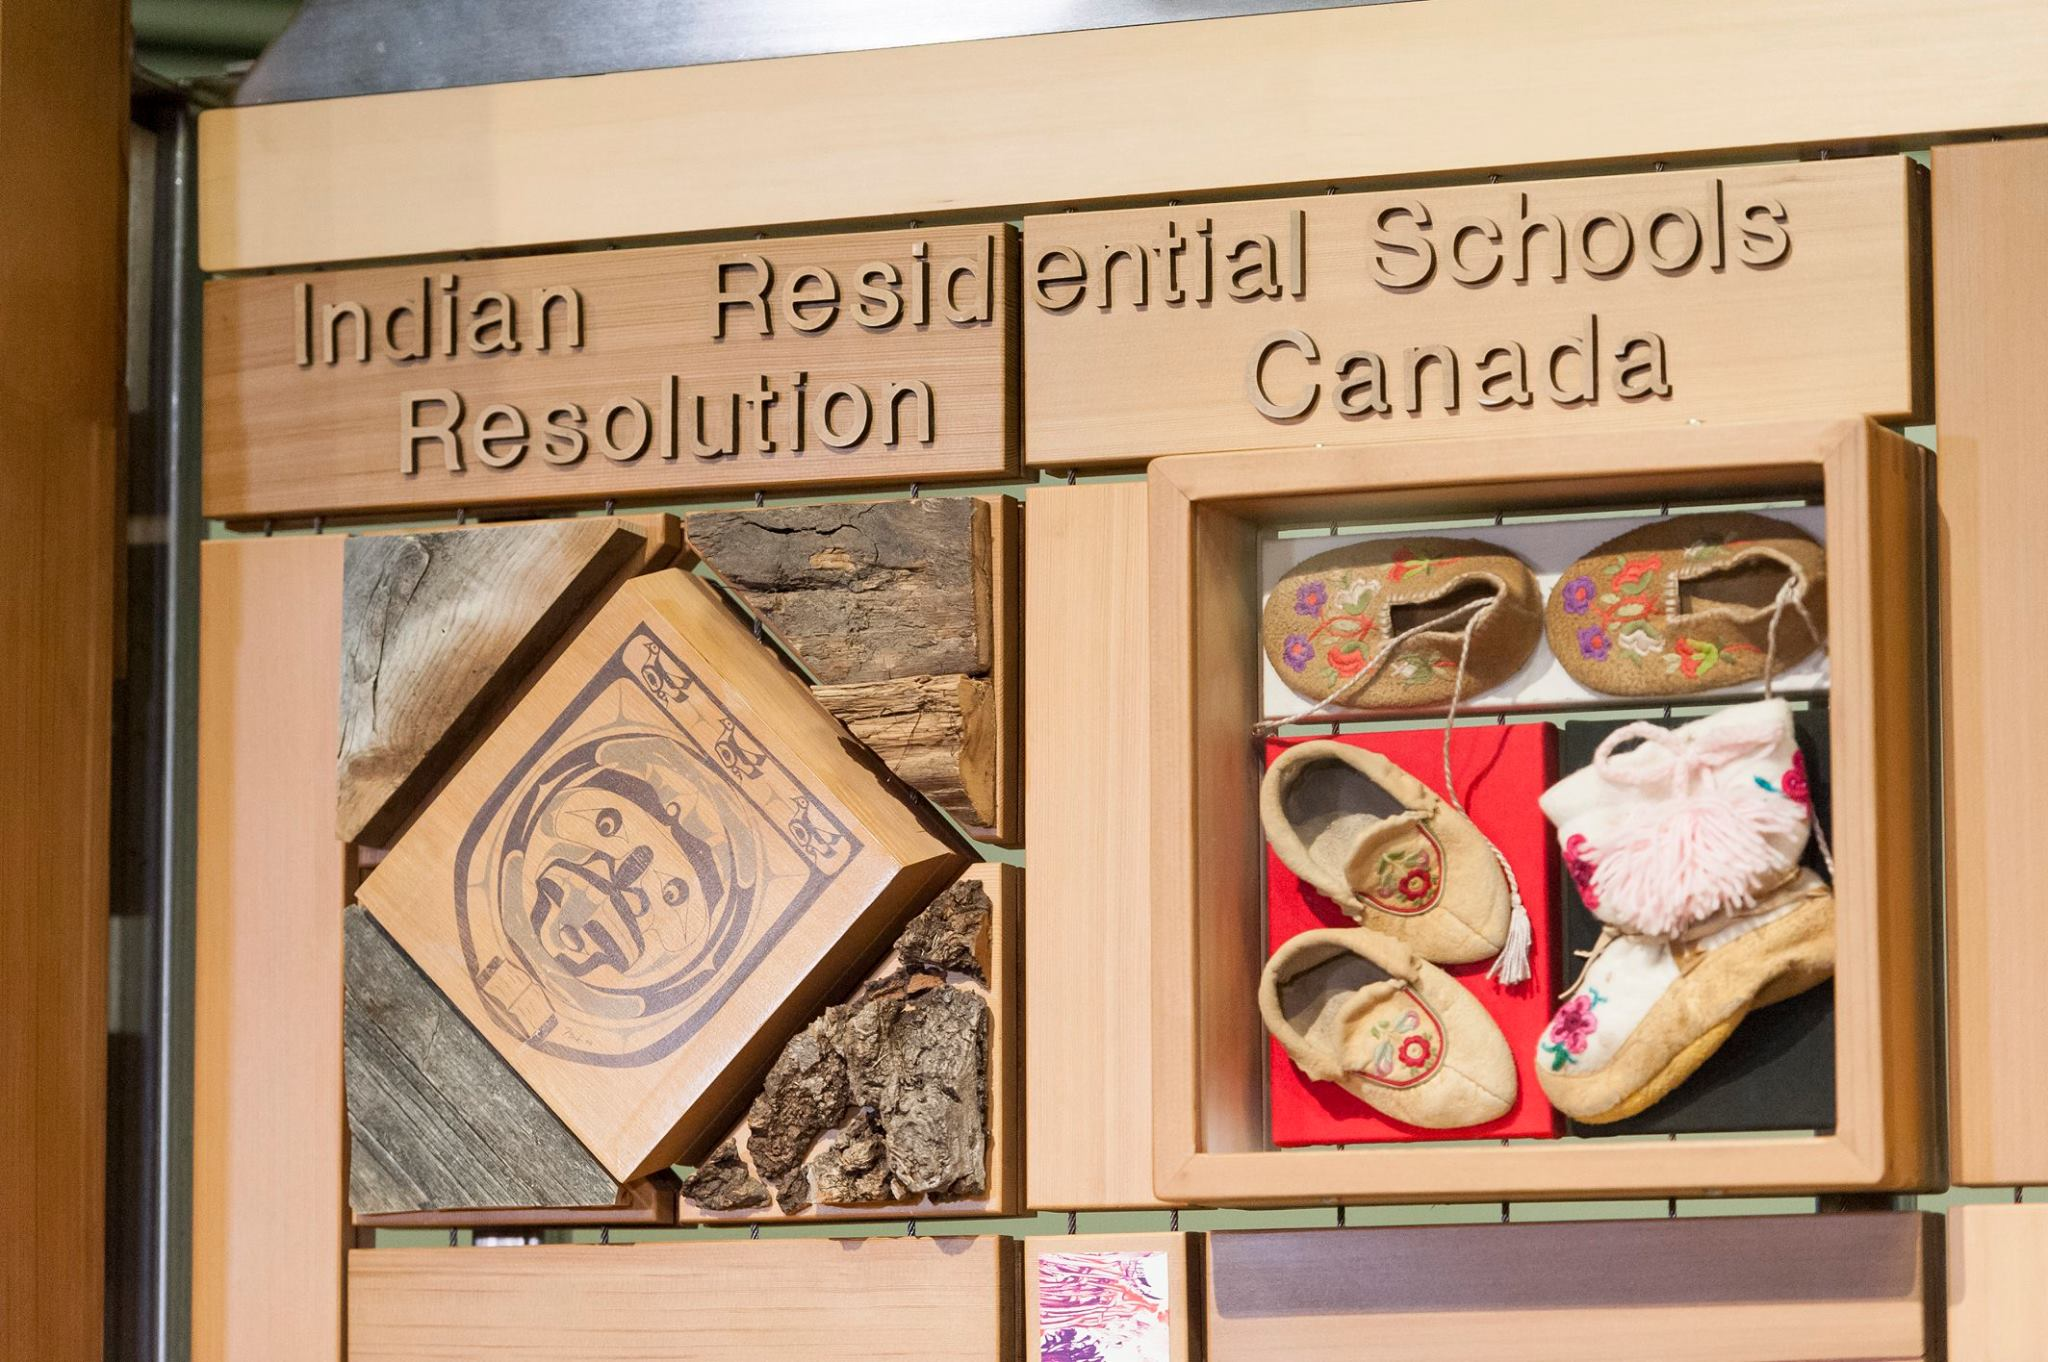 Native activists question focus of human rights museum in Canada